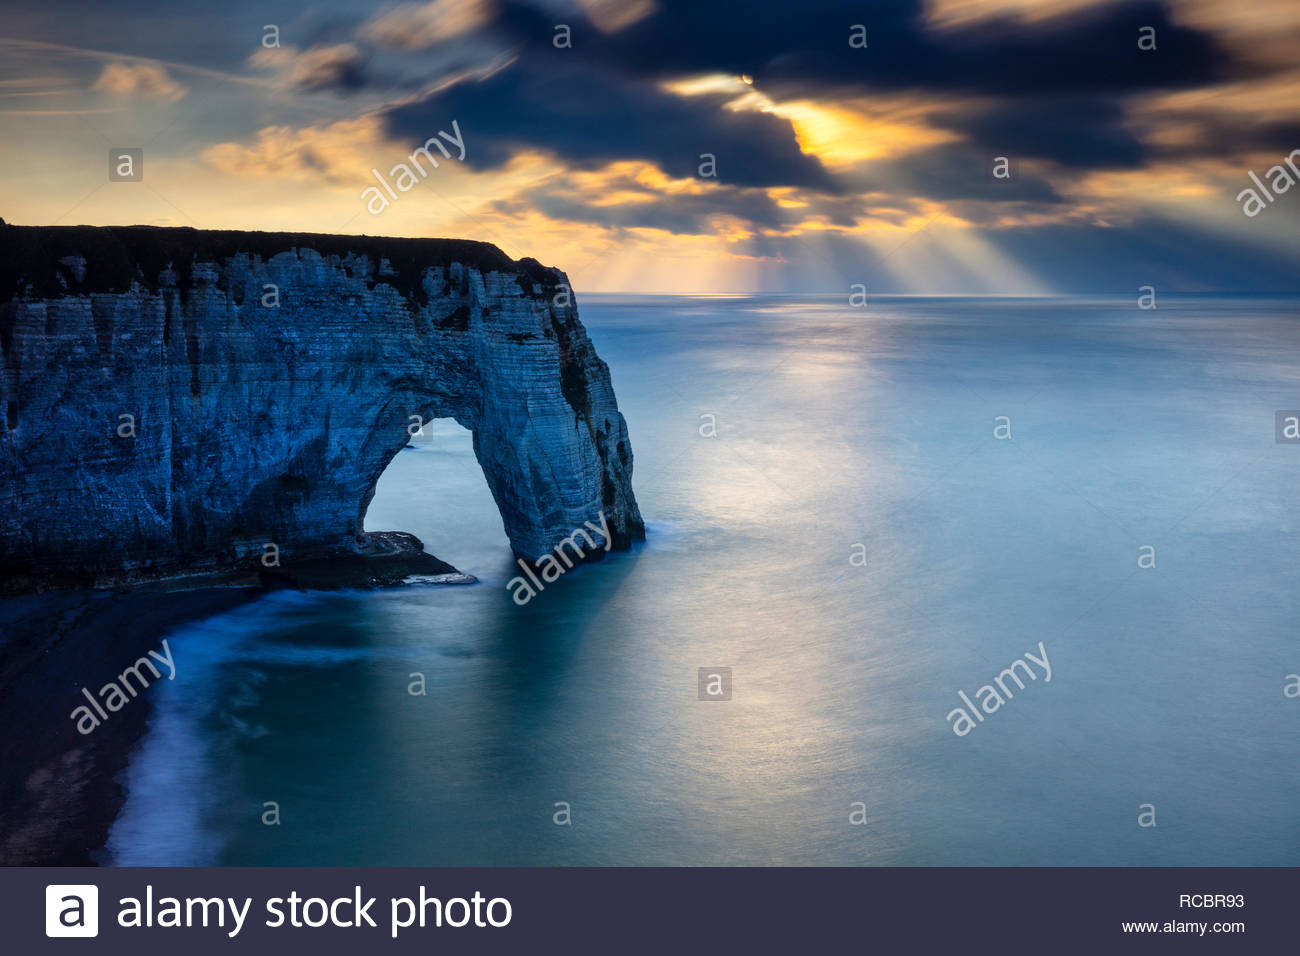 Crepuscular Rays, also known as god beams, form over the Atlantic Ocean and a large sea arch called Manneporte in the late afternoon in Étretat, Franc - Stock Image